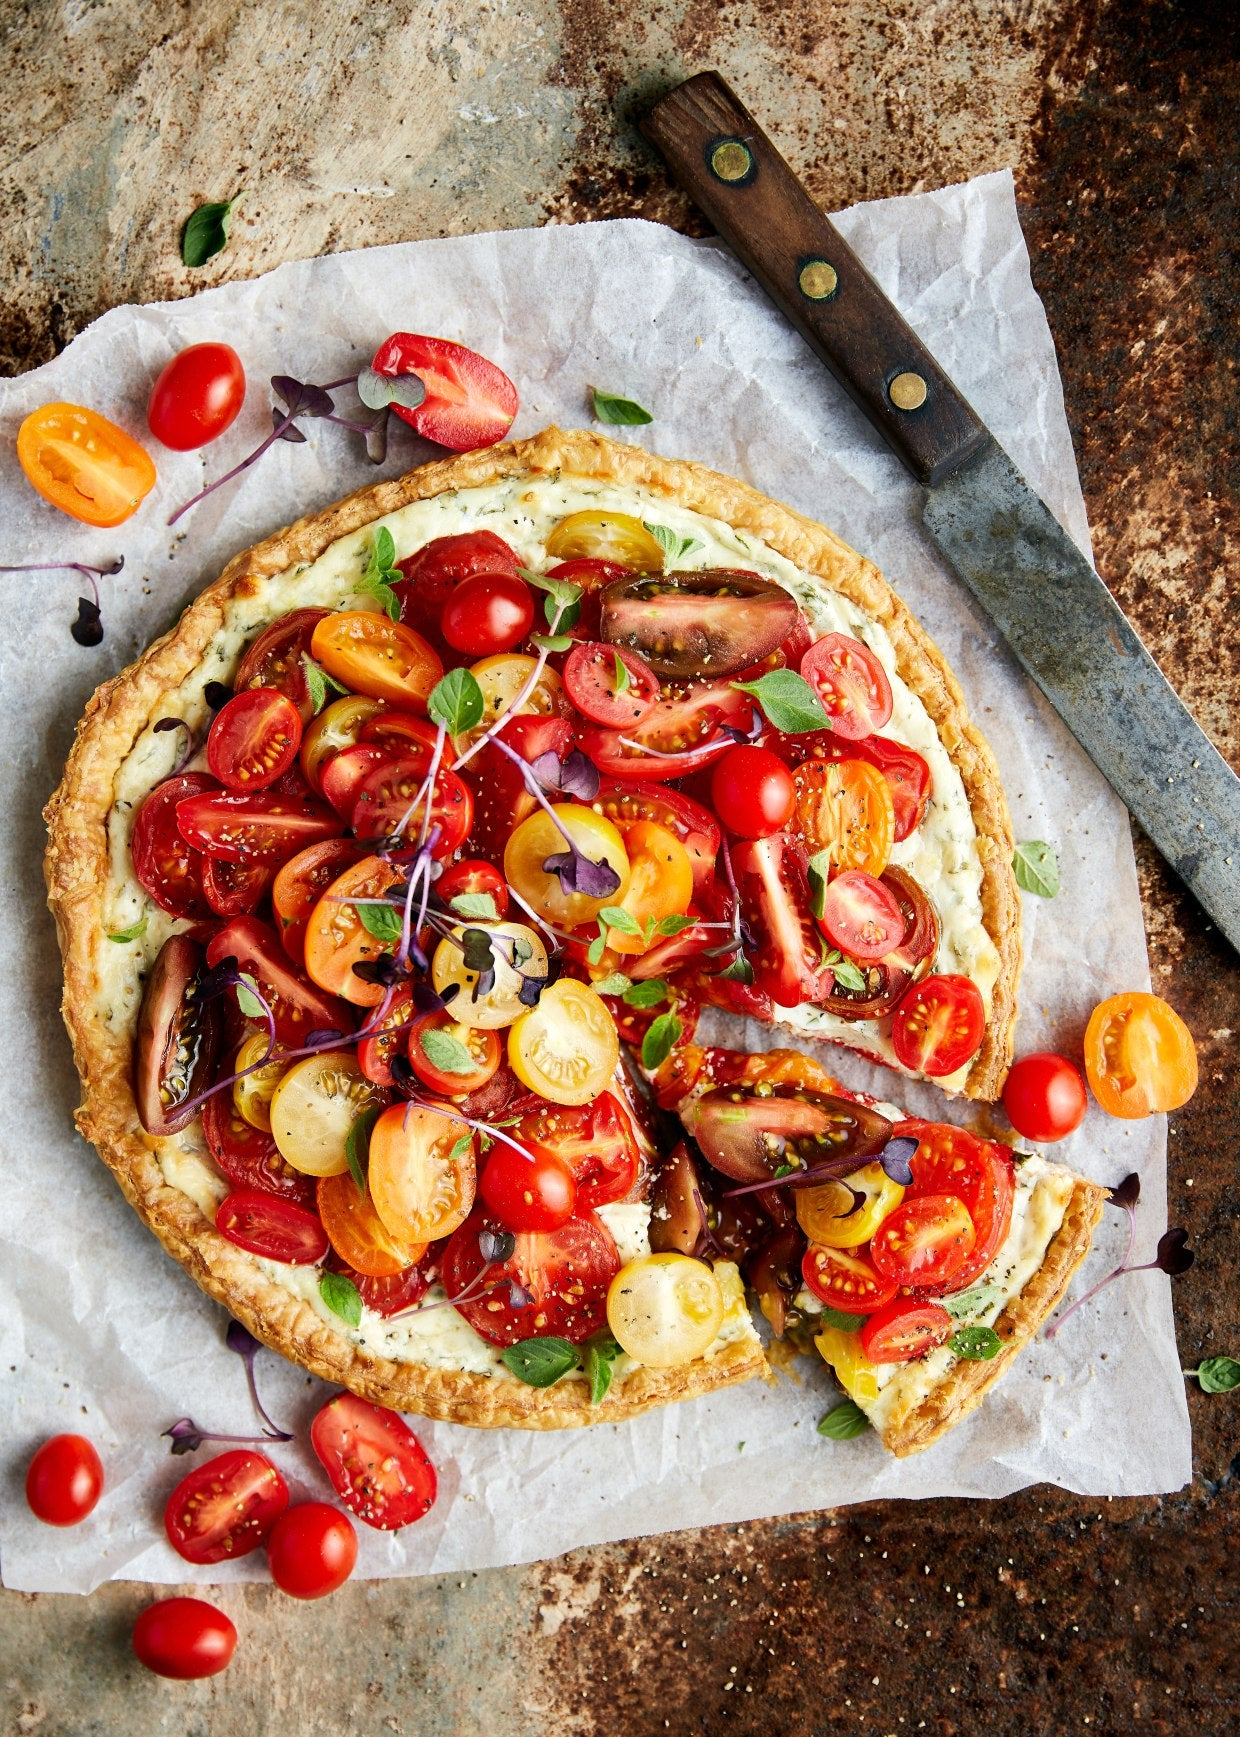 Snacking Tomato and Goats Cheese Tart | Tomato Recipes | Harris Farm Markets